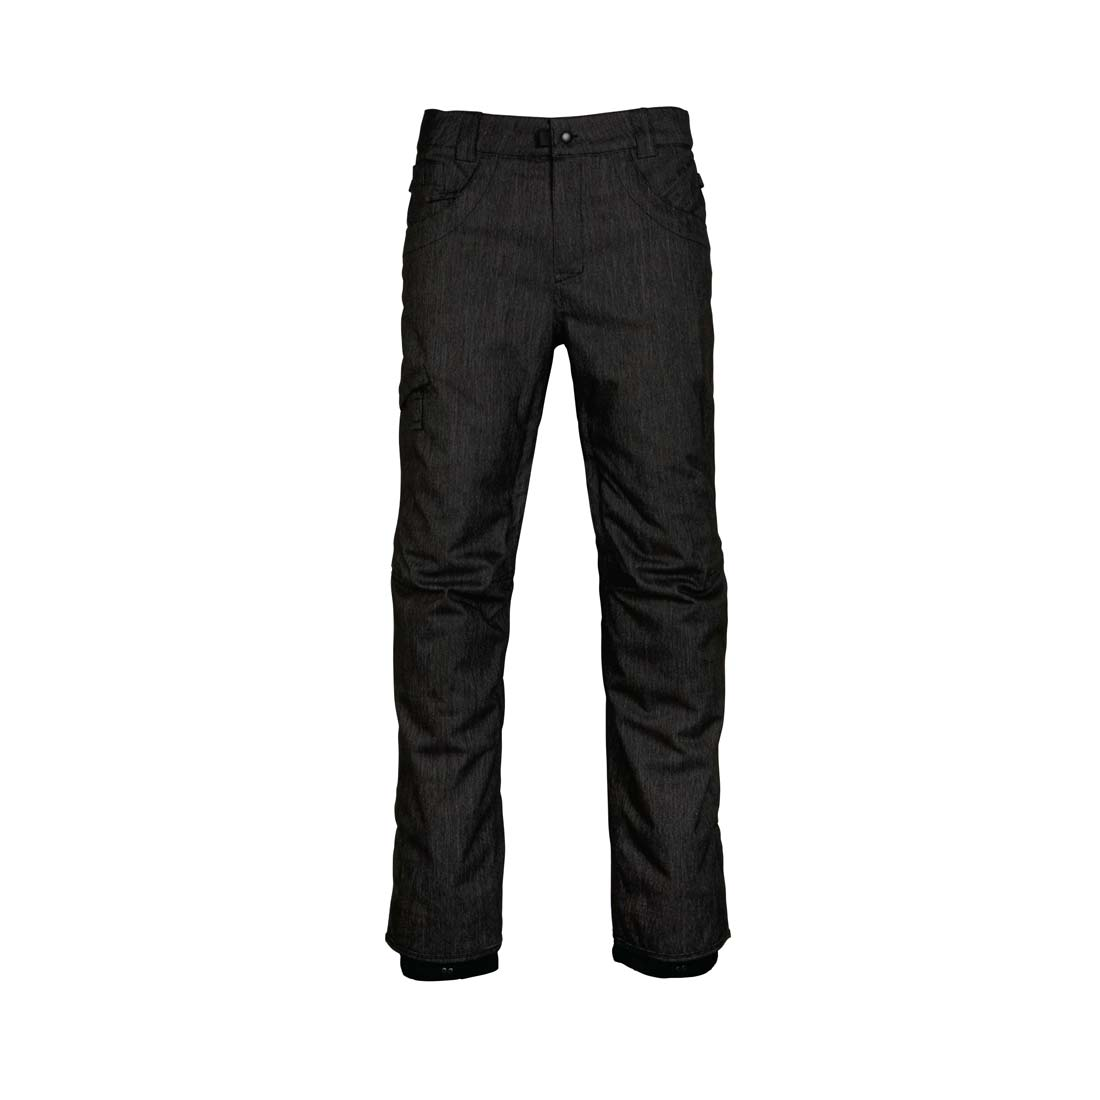 686 RAW Mens Ski And Snowboard Pants